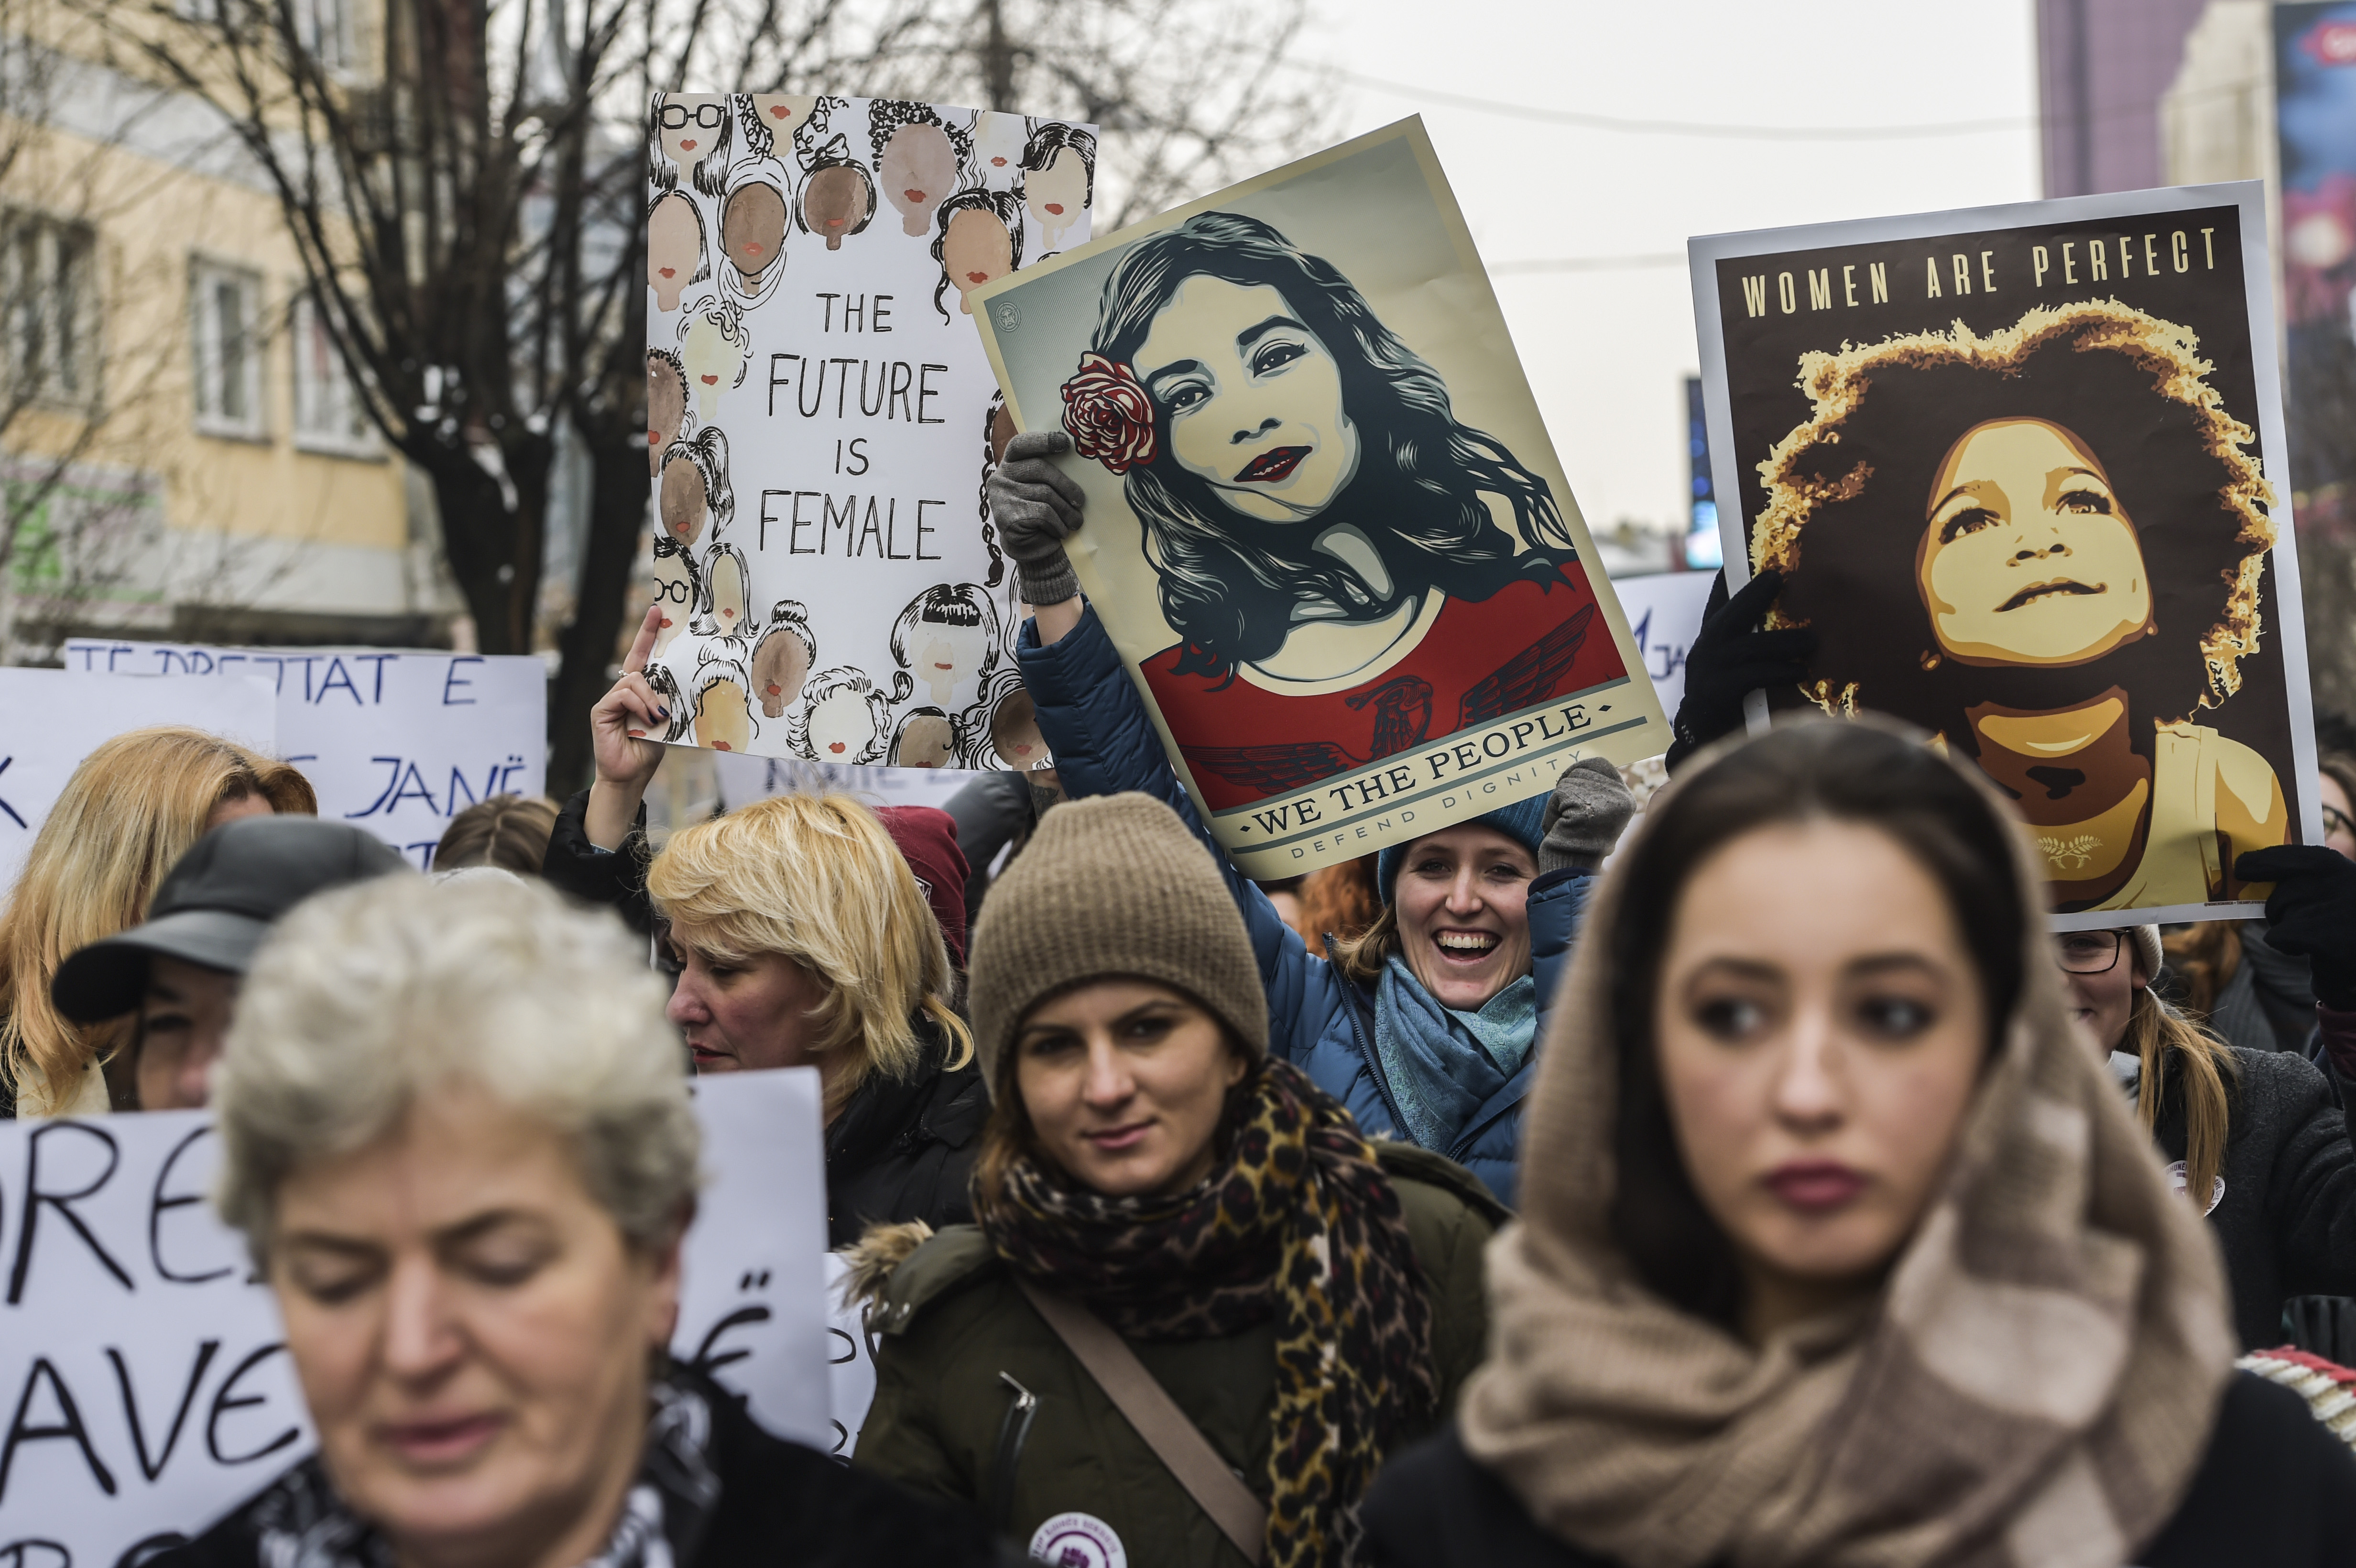 Women protest in solidarity with the march organized in Washington, on Jan. 21, 2017 in Pristina, Kosovo.